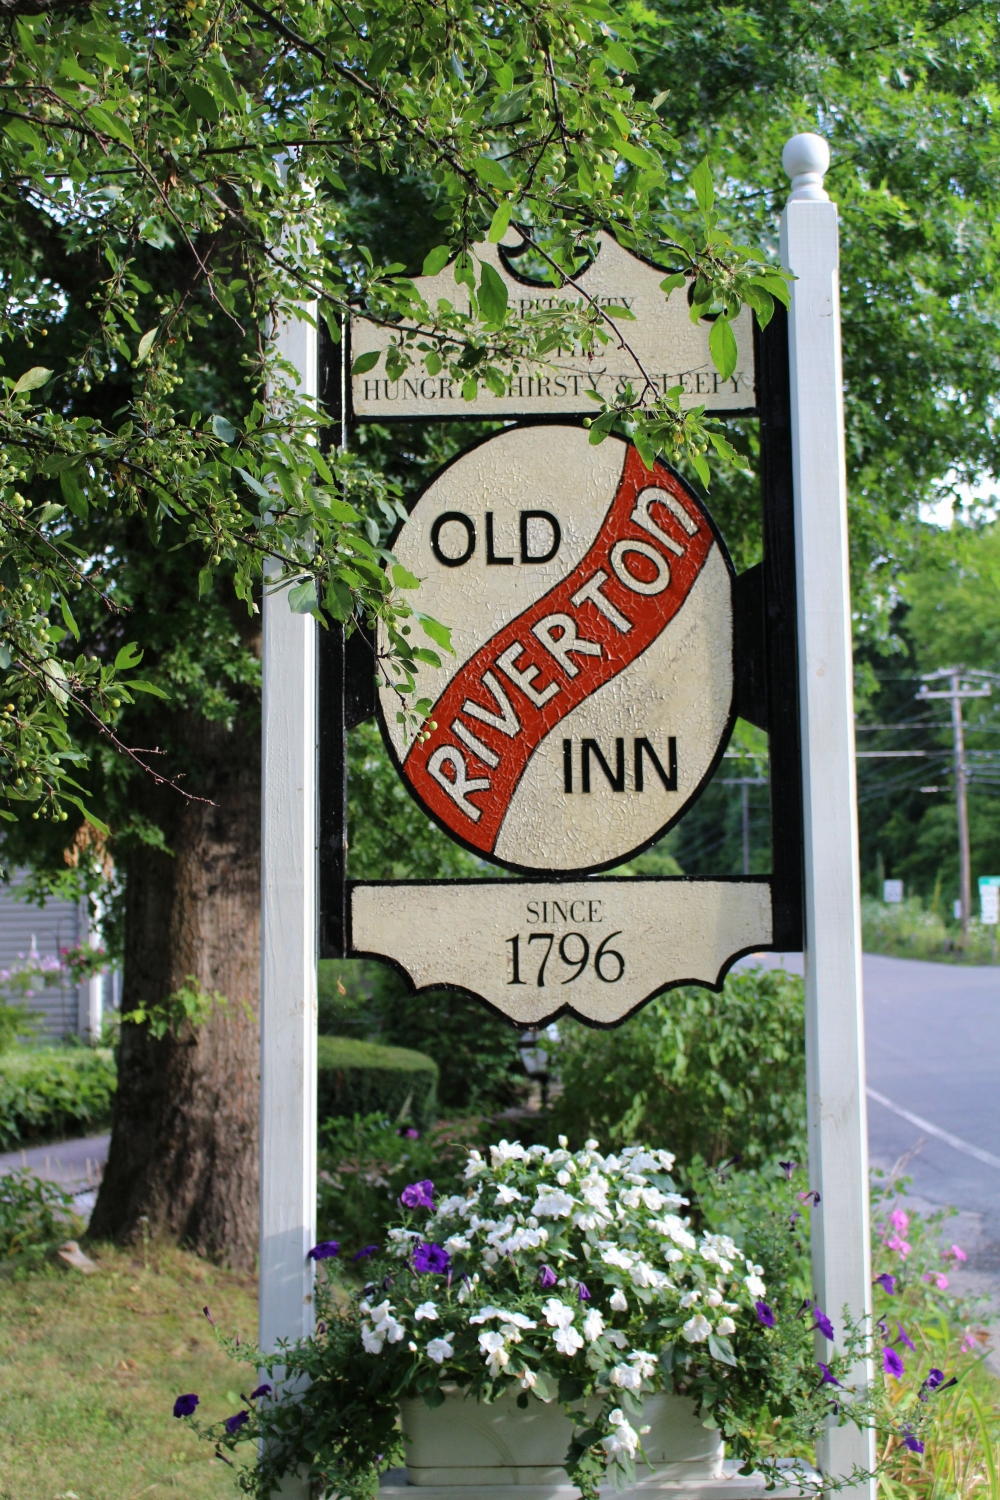 Connecticut bed and breakfast inn for sale - Old Riverton Inn